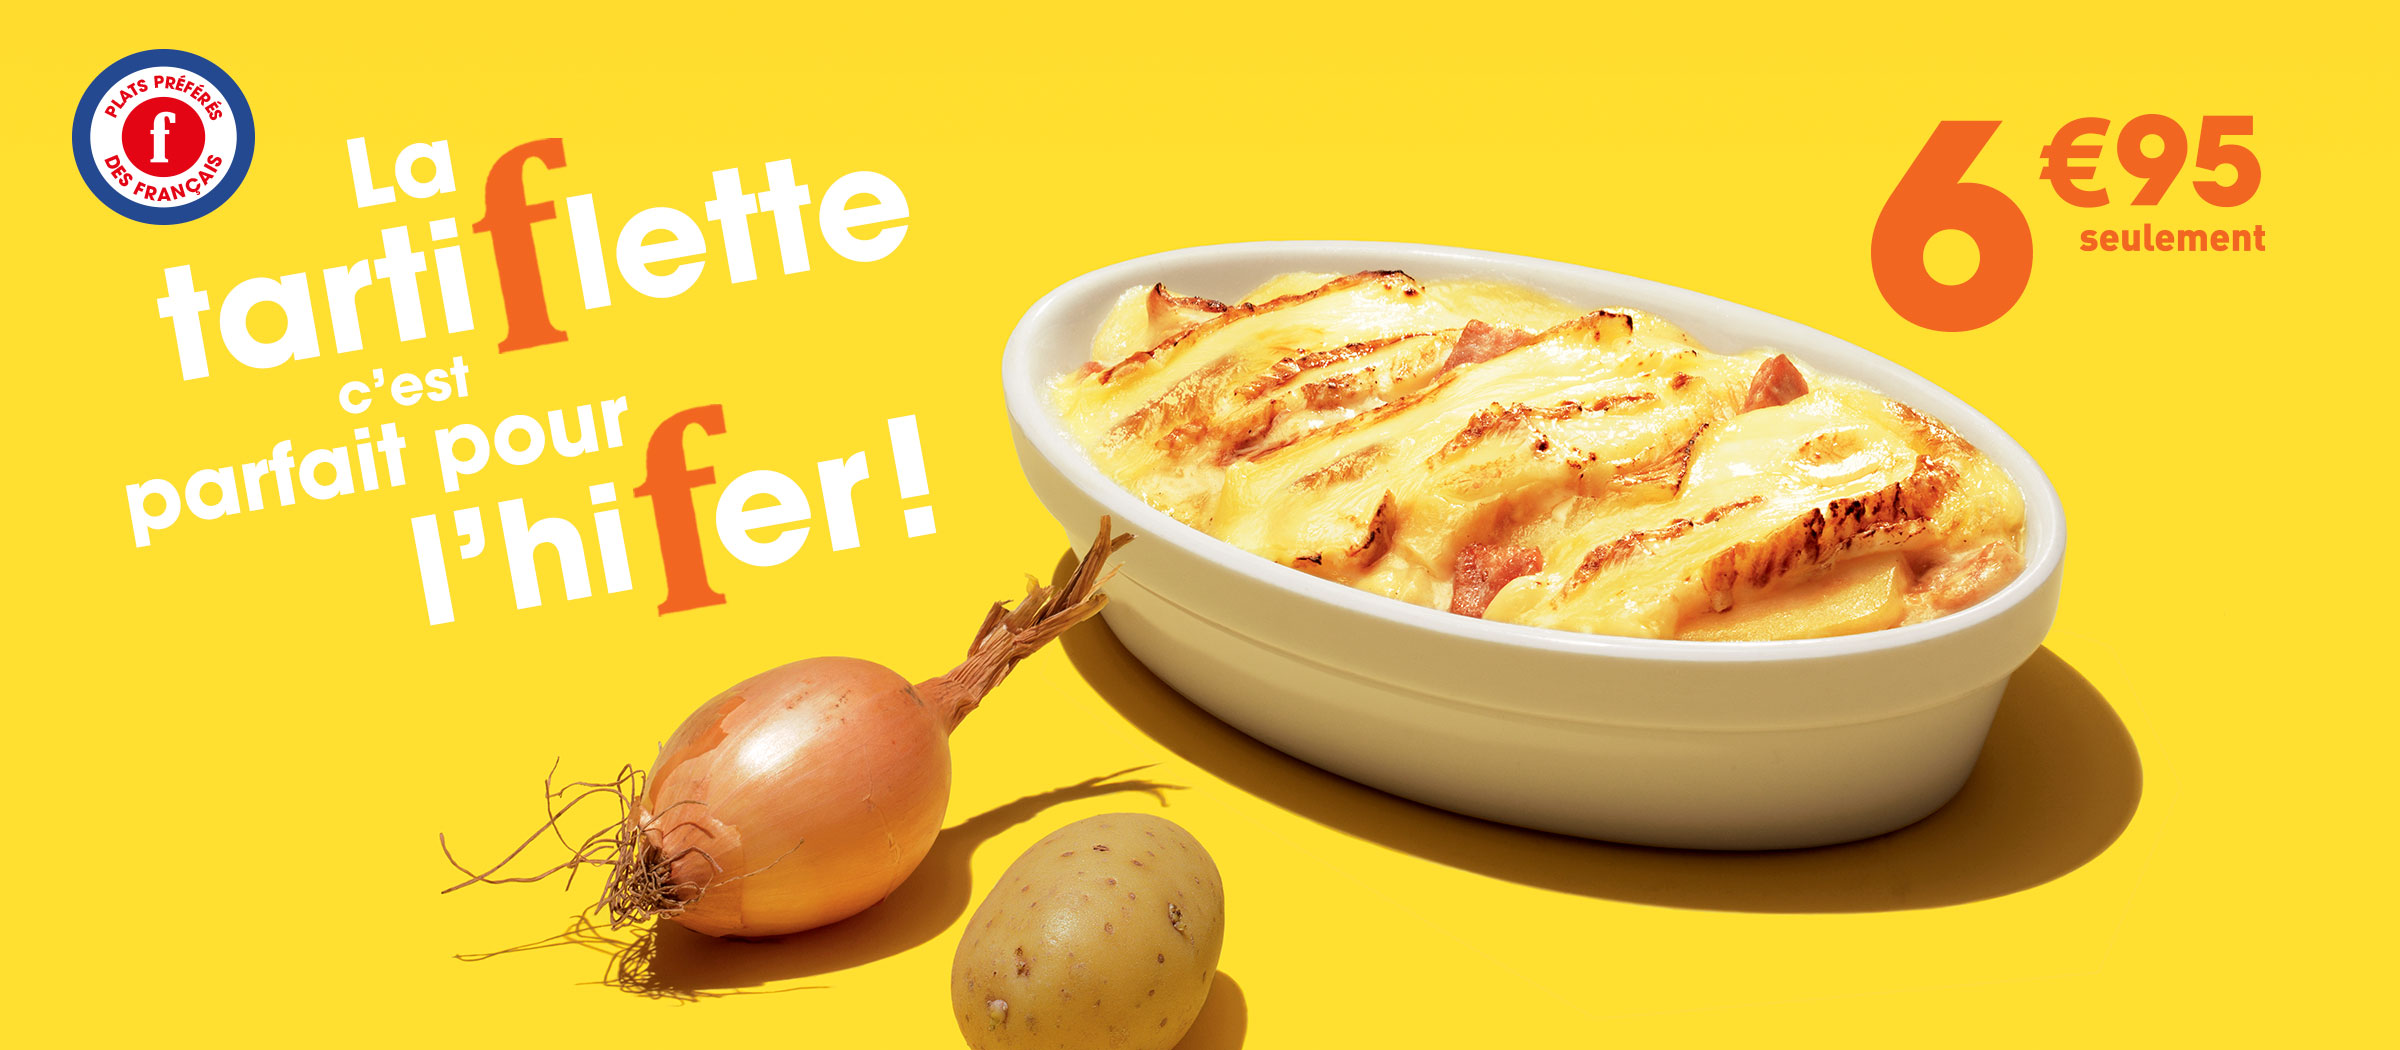 2400x1050_Flunch_tartiflette